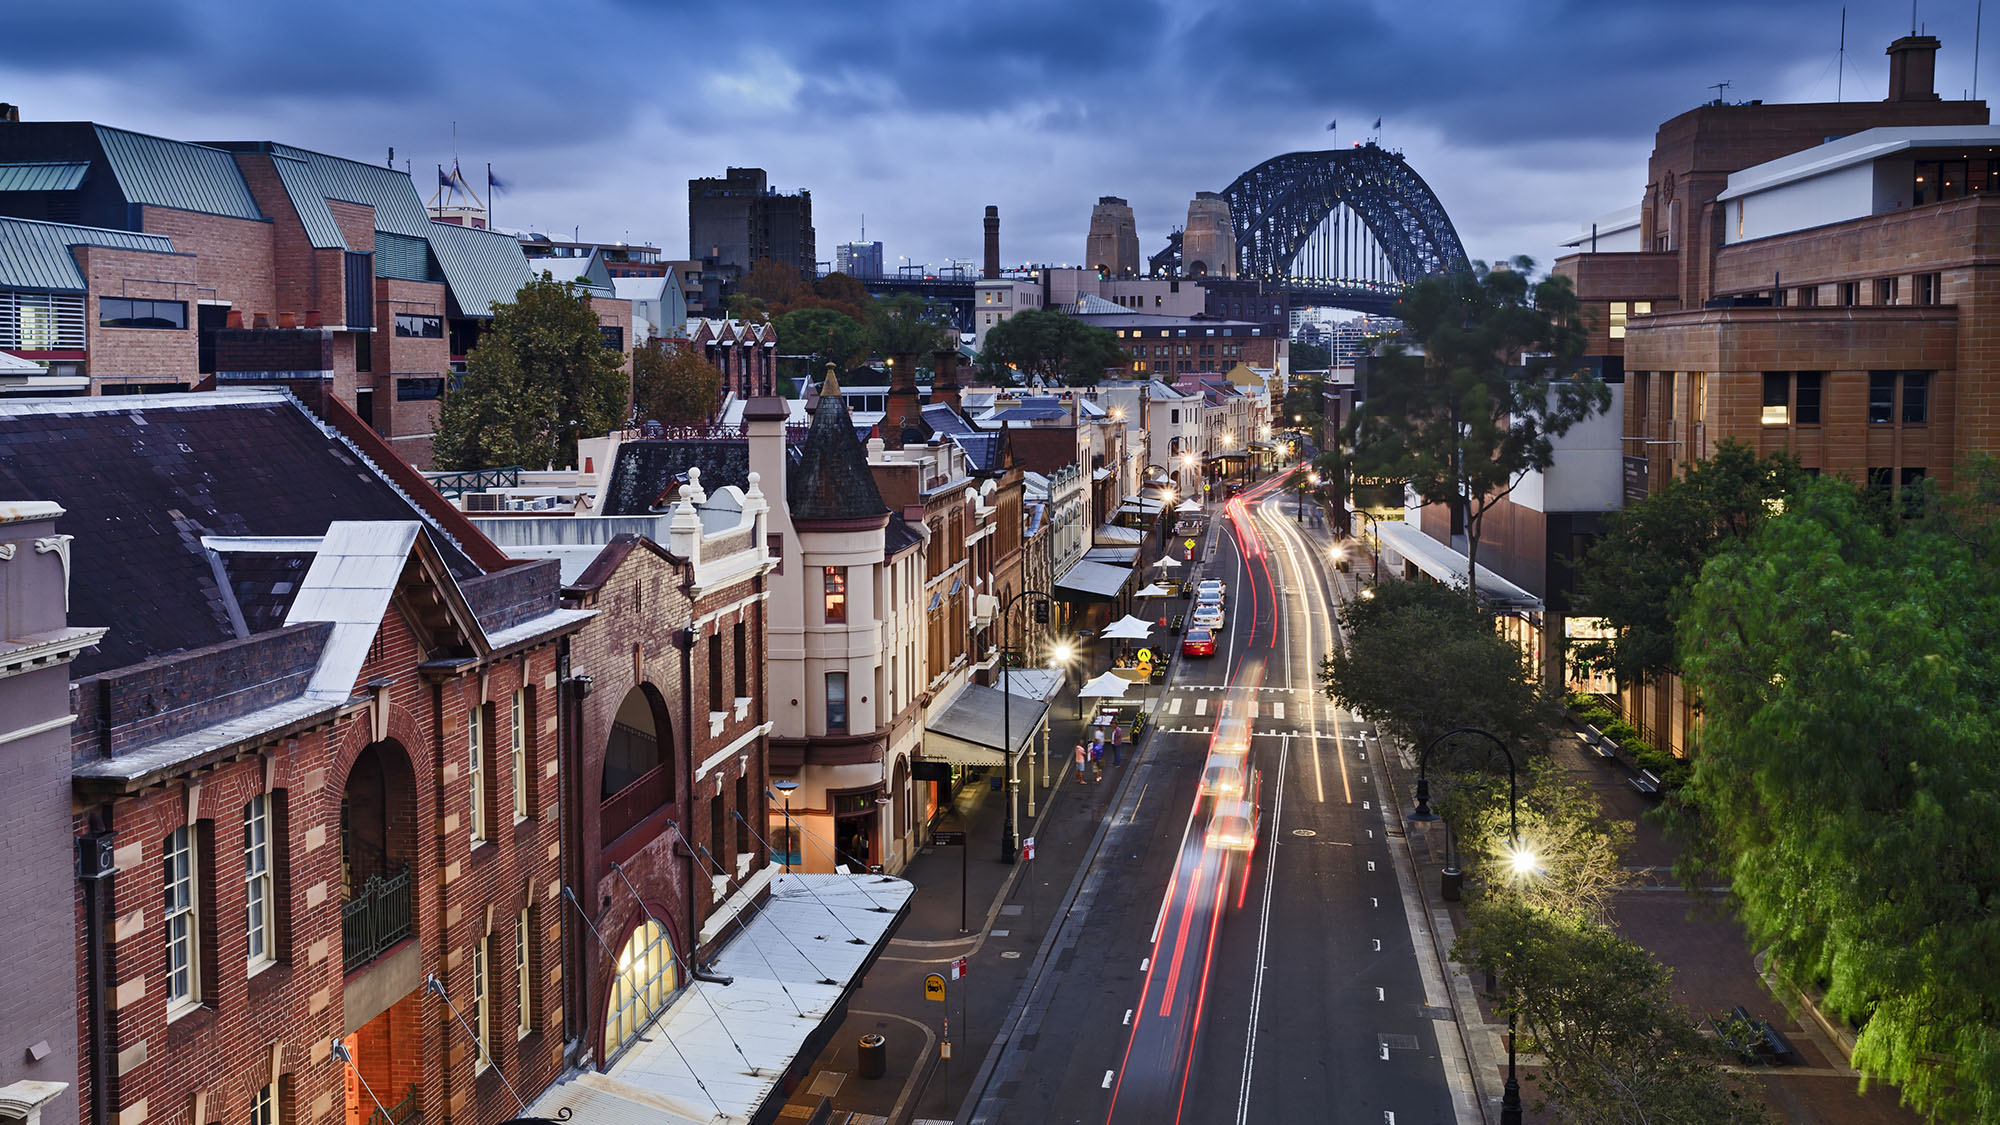 Australia crowned most expensive country for goods and services